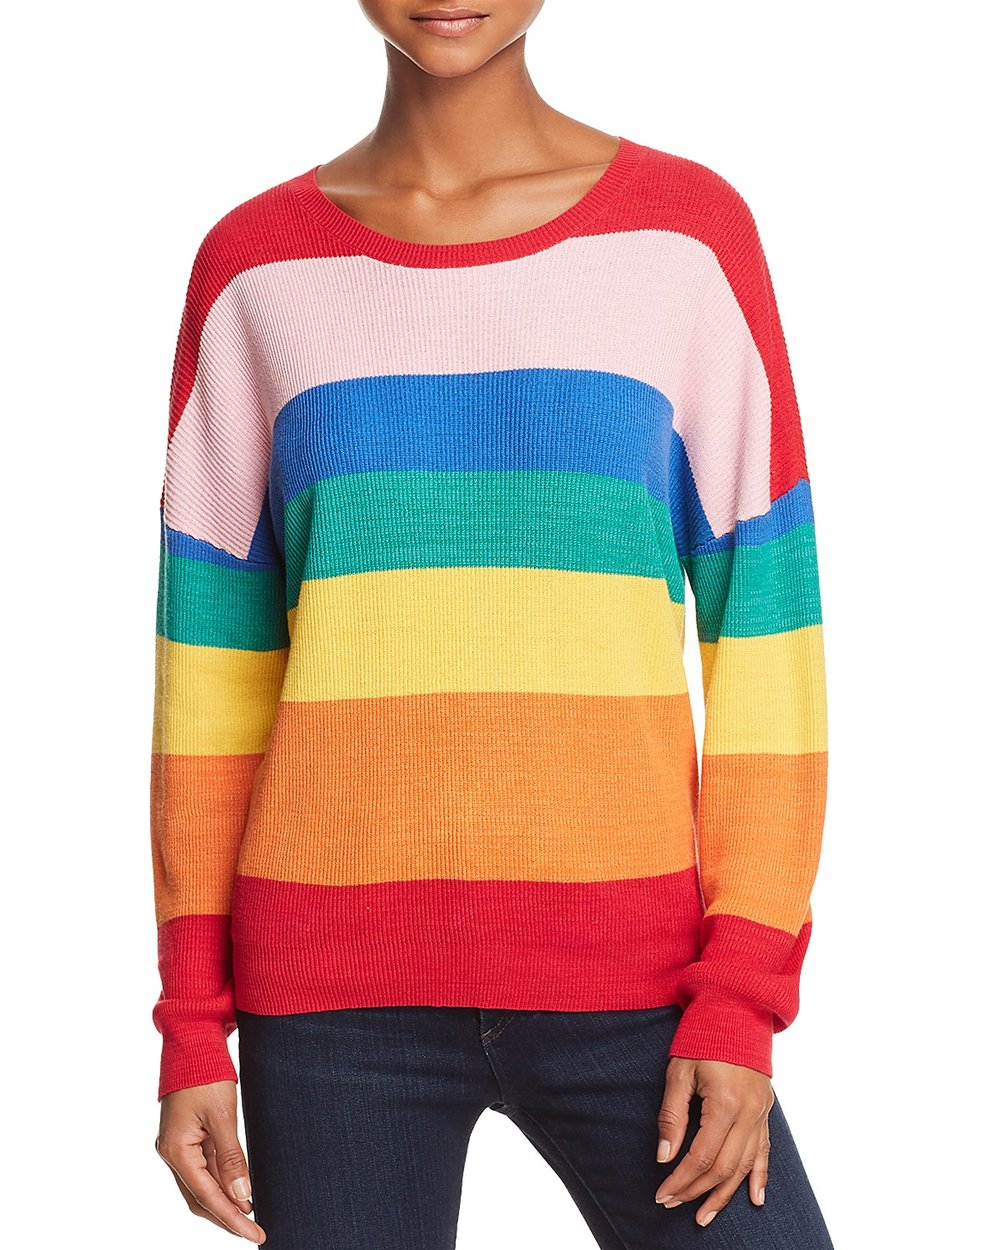 HONEY PUNCH Rainbow striped sweater, $60 Bloomingdales.com